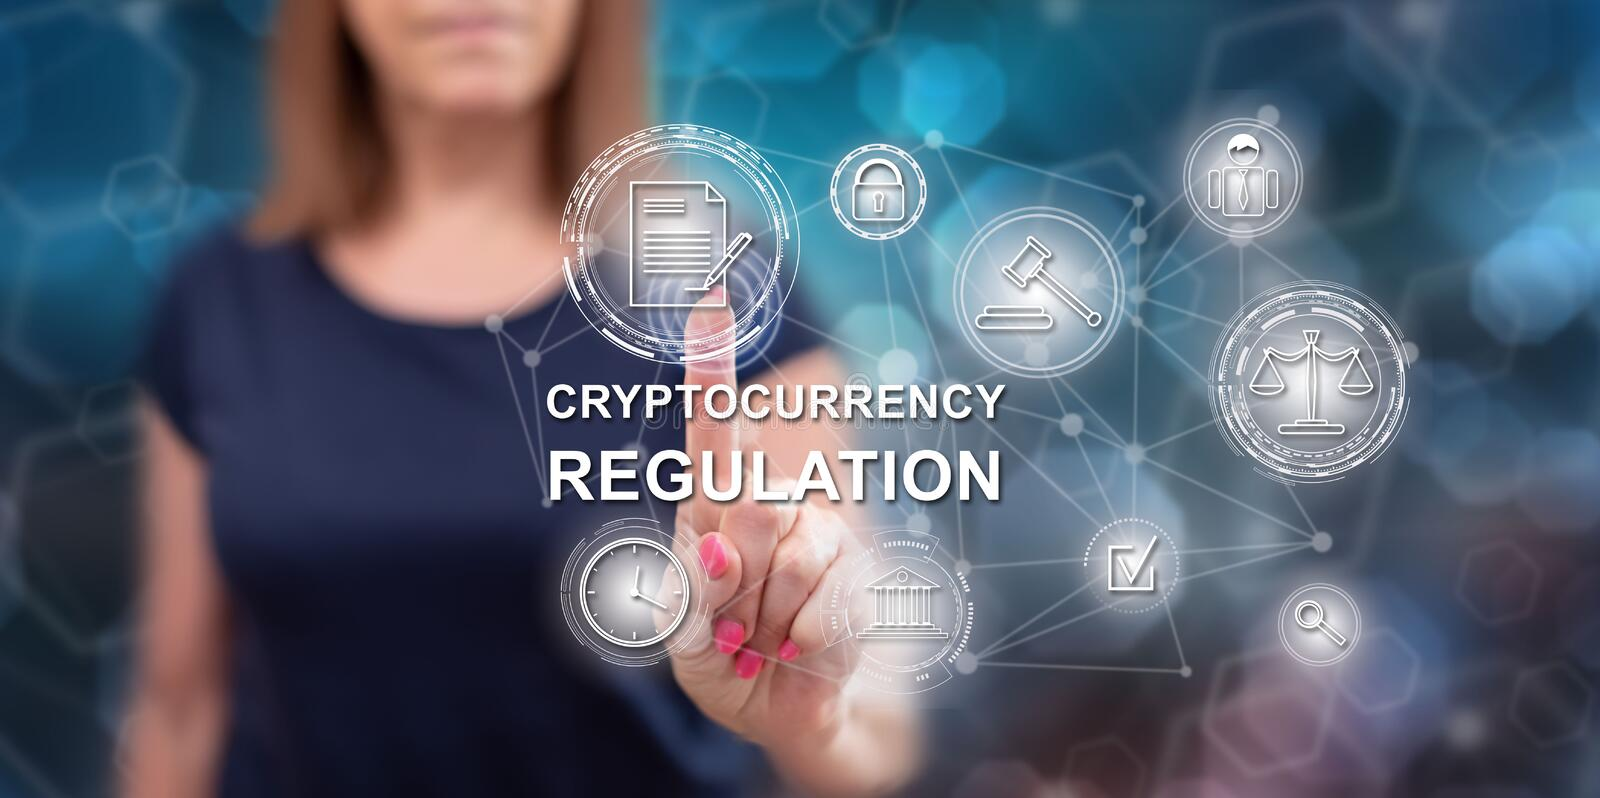 Woman touching a cryptocurrency regulation concept royalty free stock images